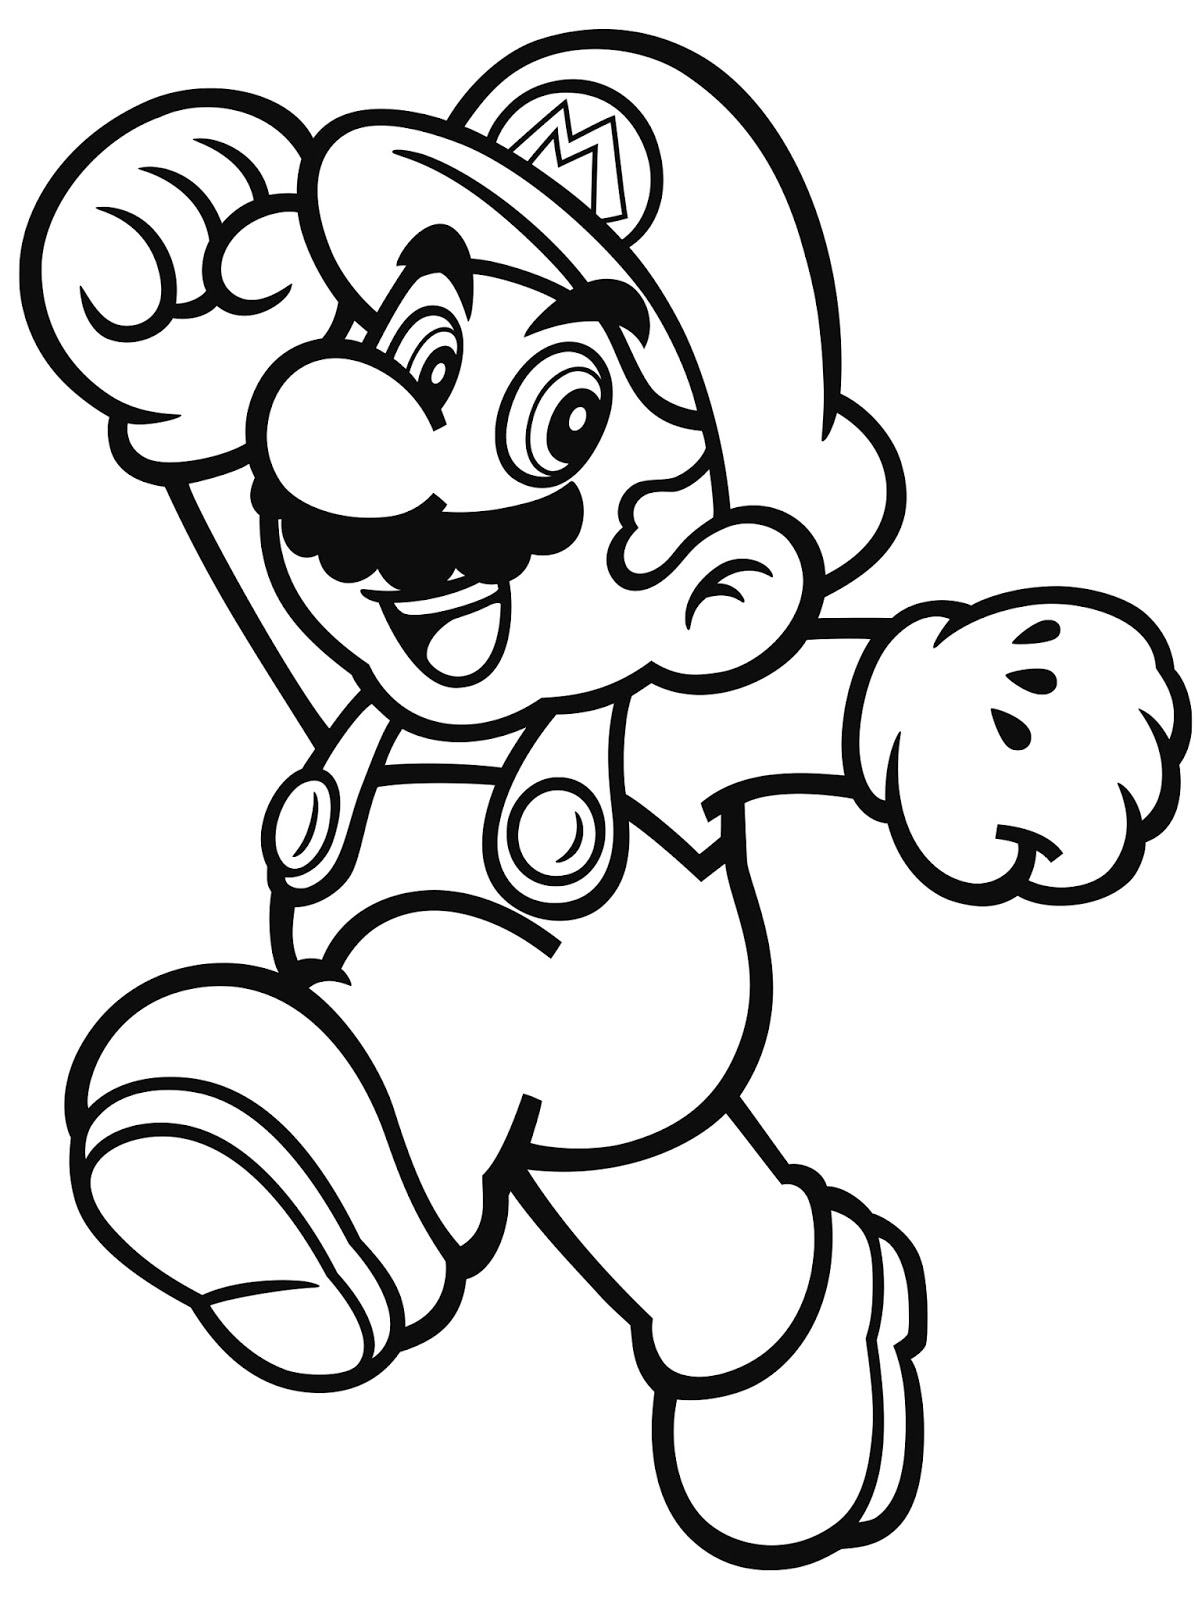 Nintendo Characters Coloring Pages At Getdrawings